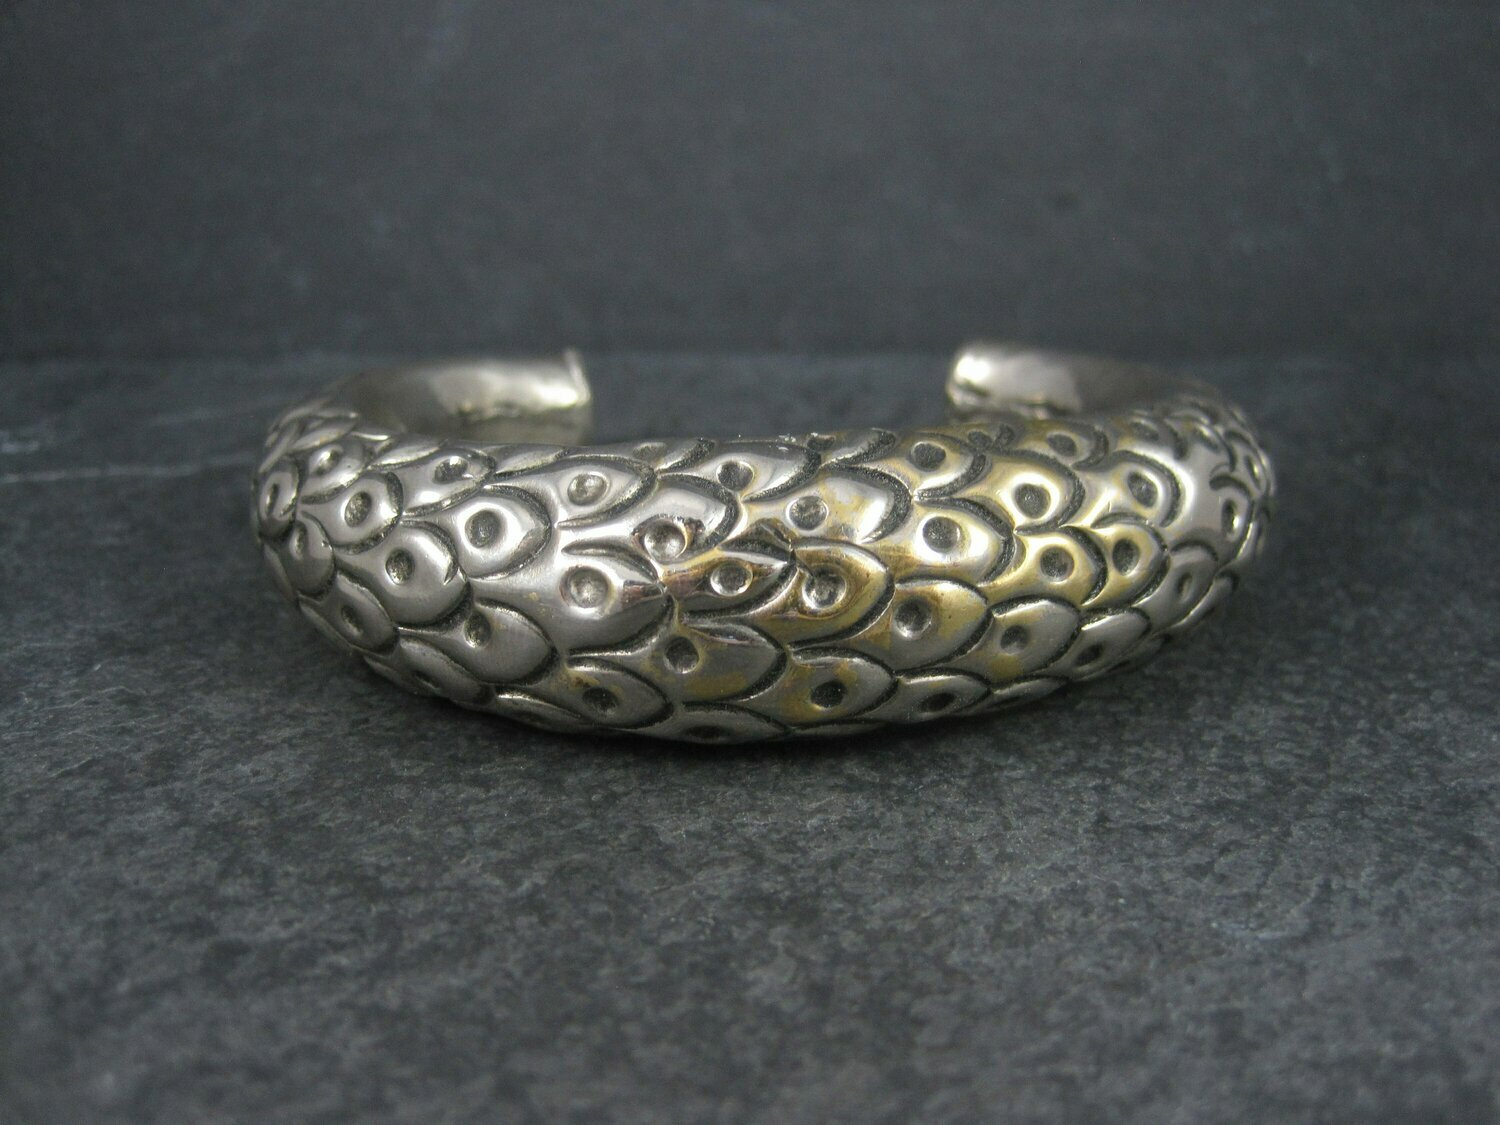 Antique Hollow Peacock Rattle Cuff Bracelet 7.25 Inches